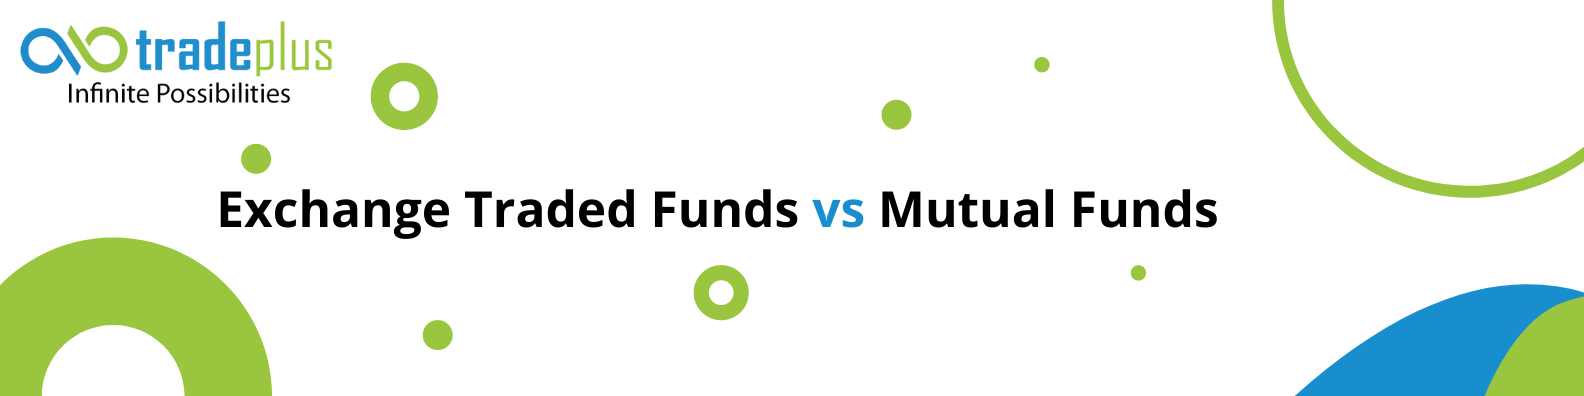 Exchange traded funds vs mutual funds What is Exchange Traded Funds and How they are Different from Mutual Funds